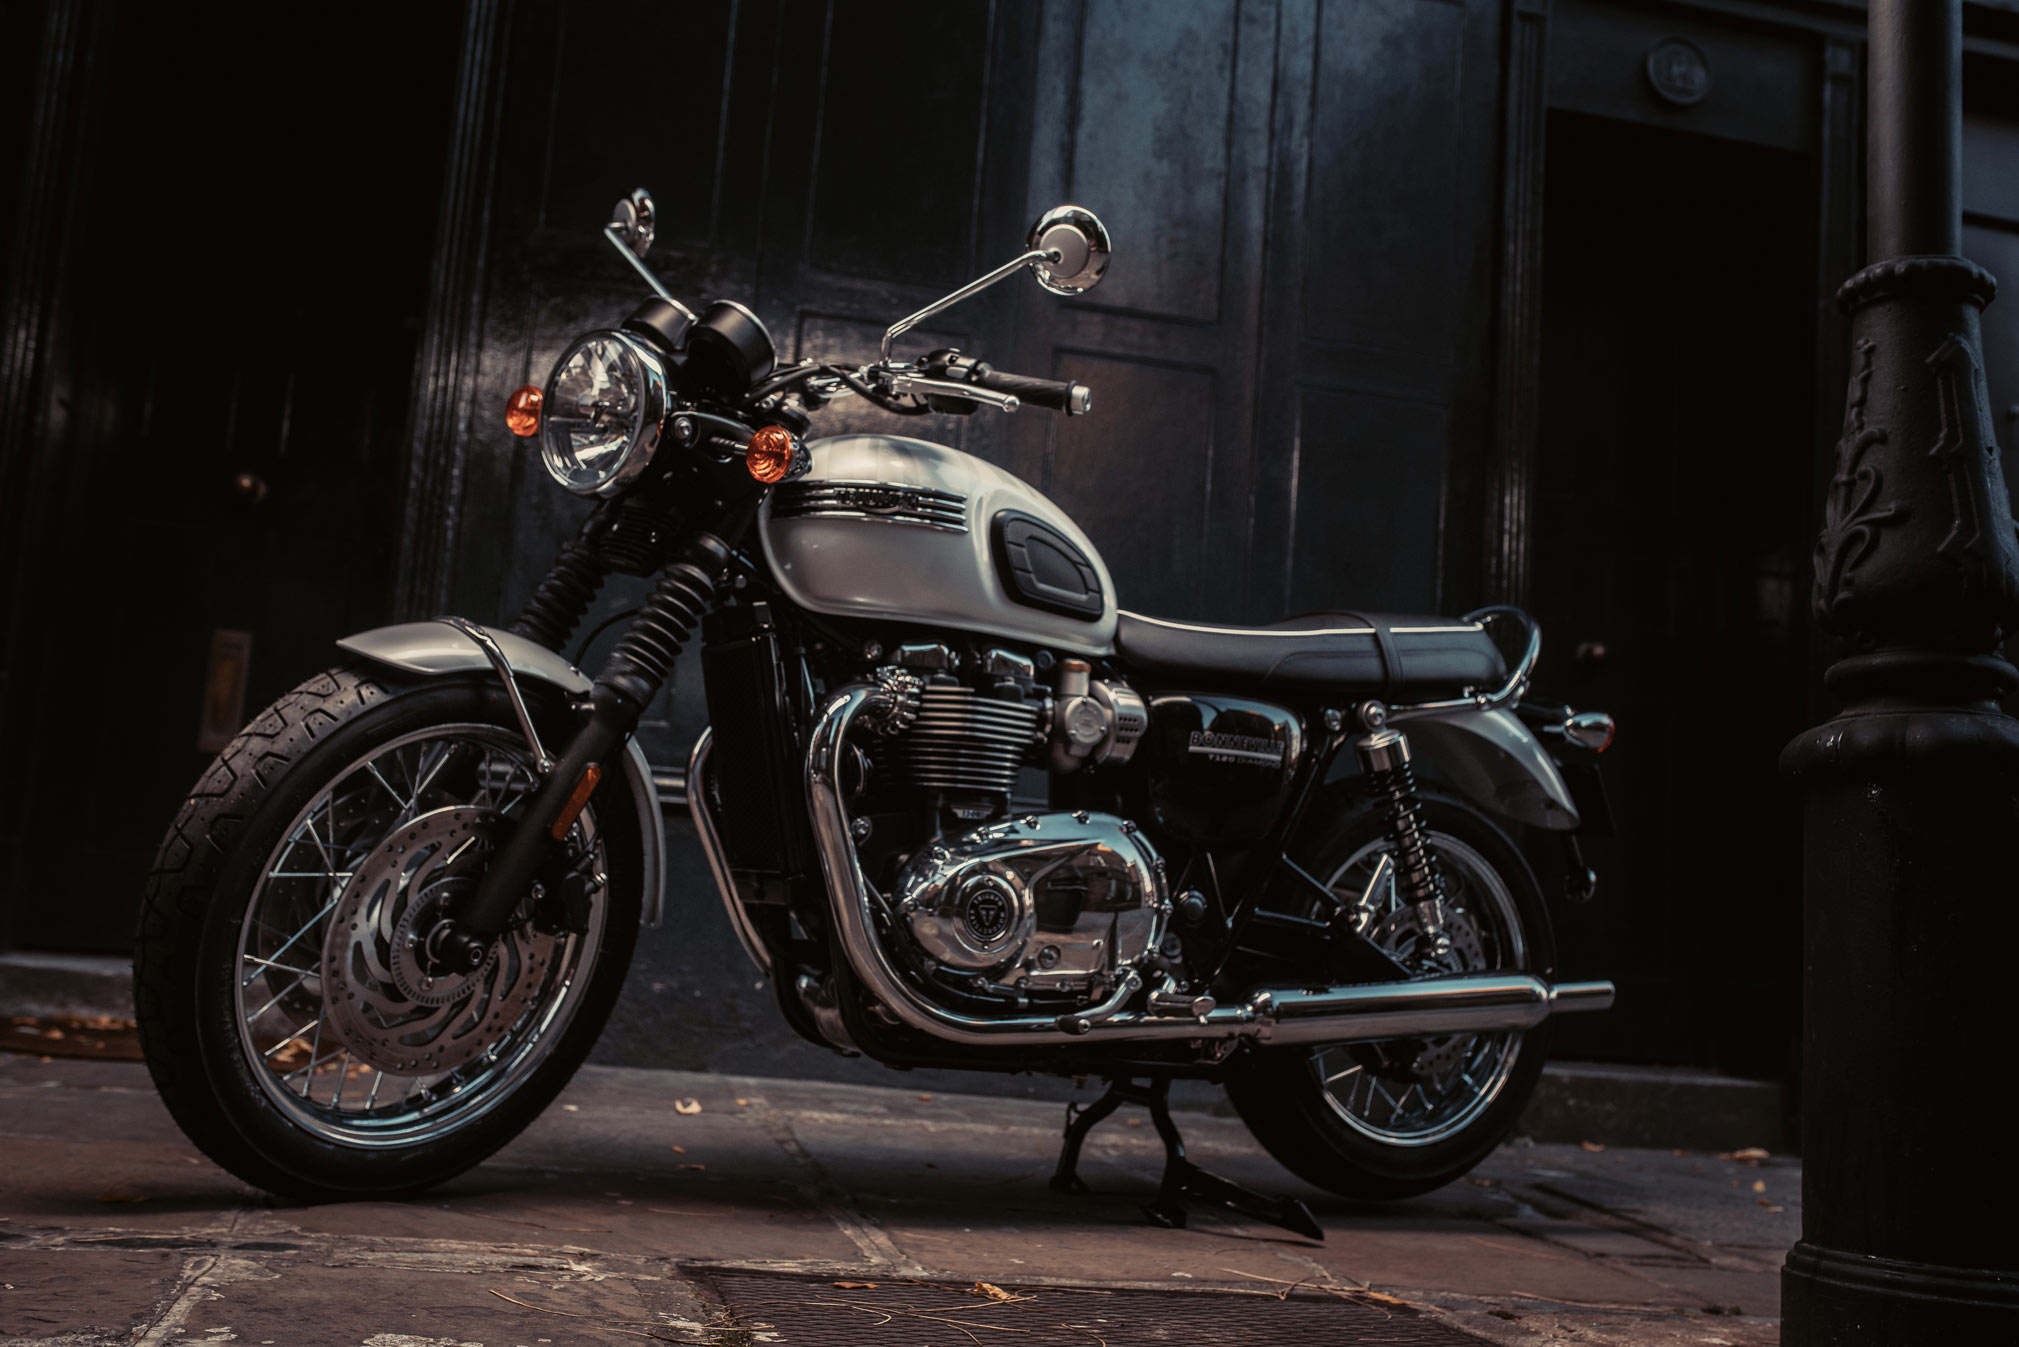 2019 Triumph Bonneville T120 Diamond Edition Guide Total Motorcycle